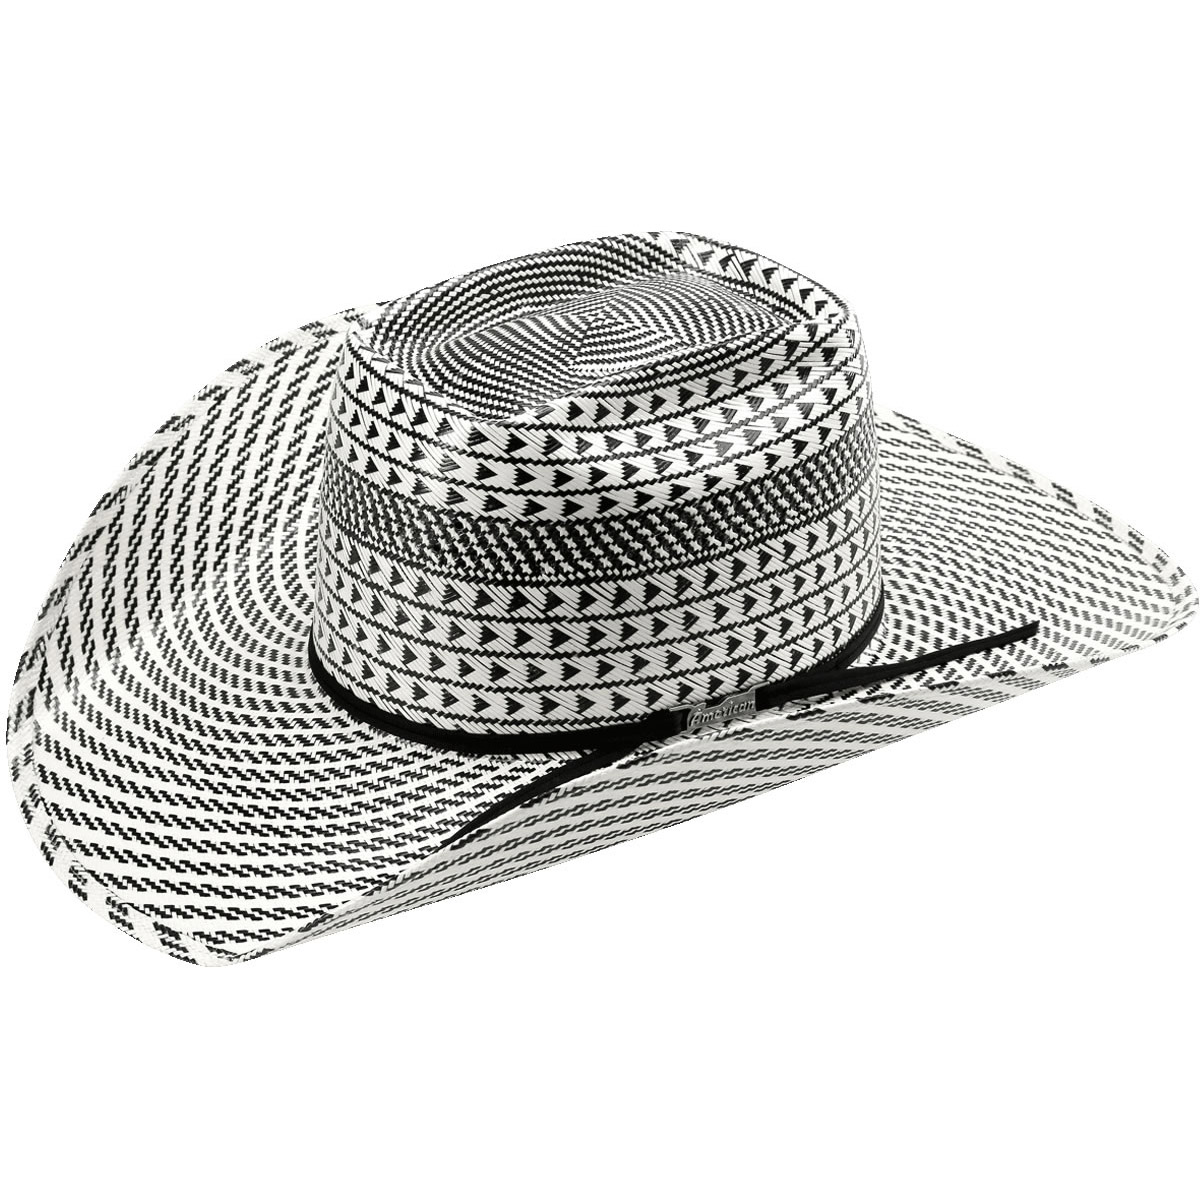 f87d008c1e3 Custom Order ETA  2-4 weeks. FREE US Shipping for Orders  100   Up.  American Hat Co 15☆ Swirl Vented Straw Hat - Black White